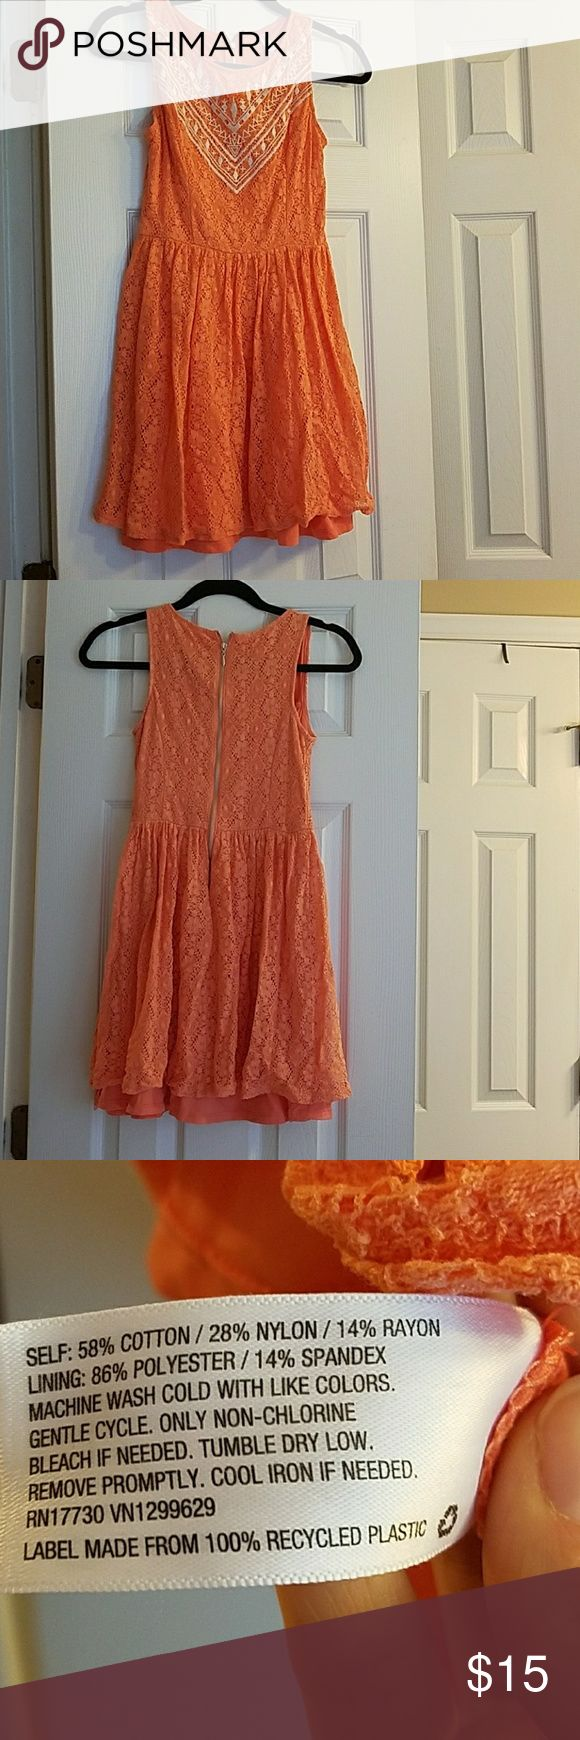 Coral Dress from Target Coral lace dress with white embroidery in the front. Zip back closure. A tighter fitting small. Cute for summer! Xhilaration Dresses Mini